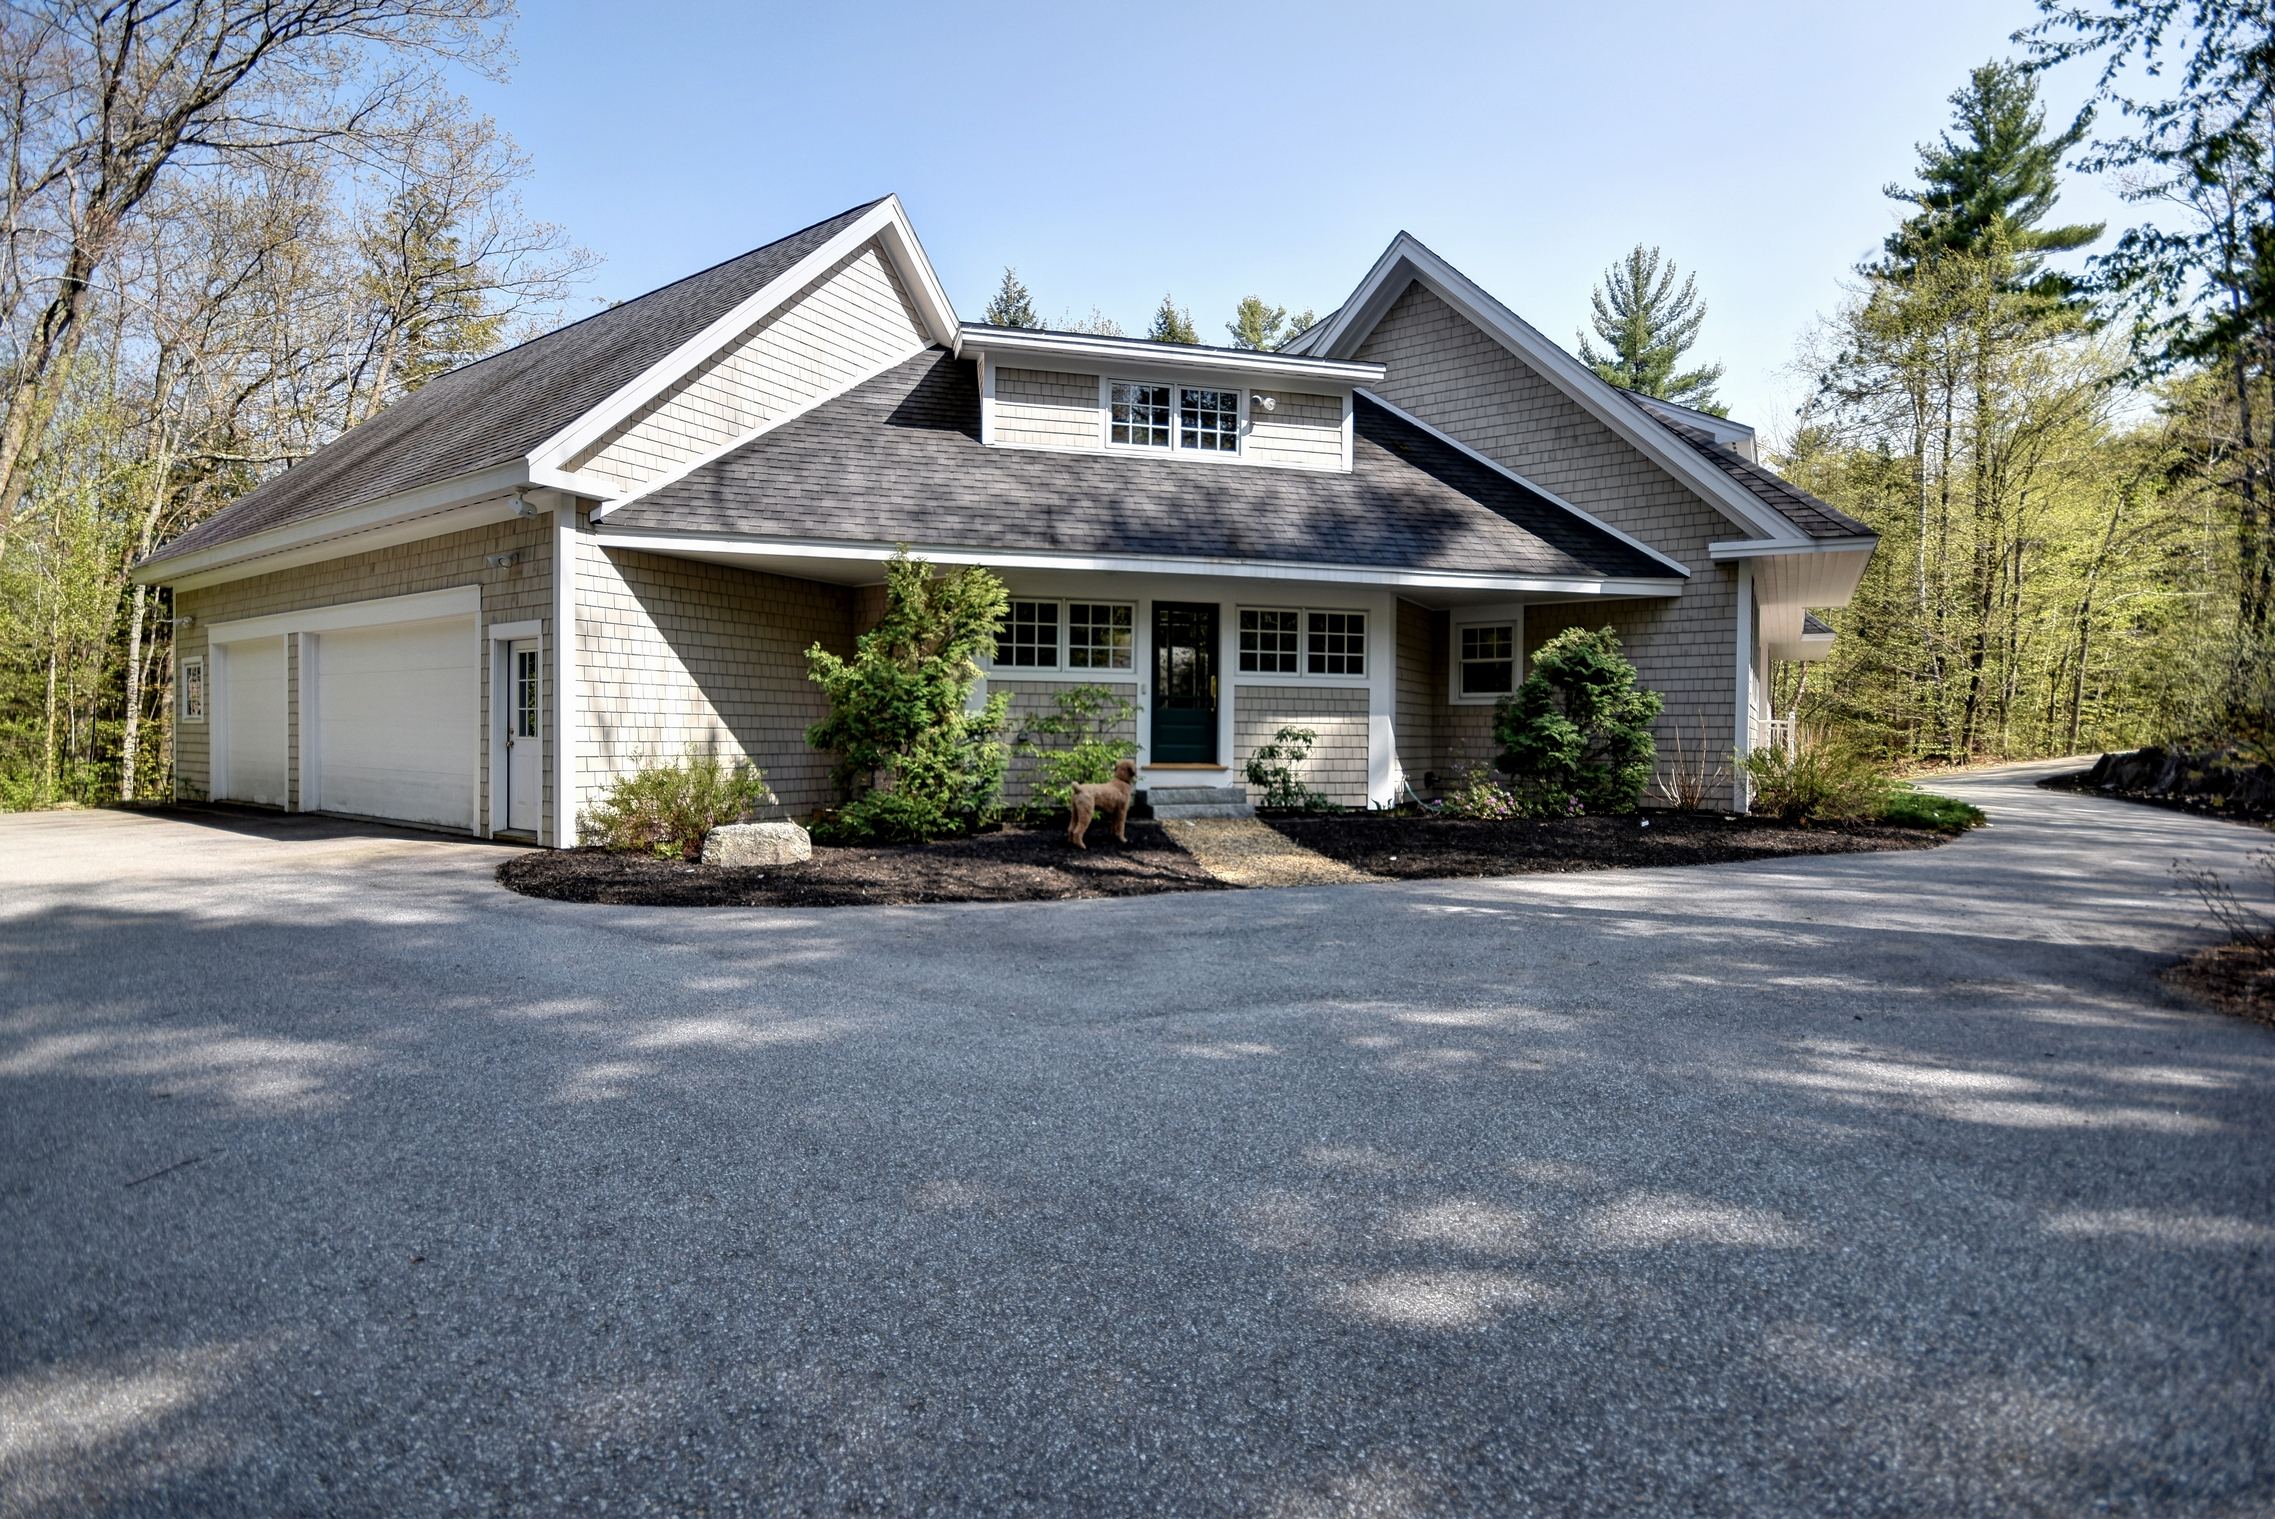 Single Family Home for Sale at 54 Swain Road, Meredith 54 Swain Rd Meredith, New Hampshire, 03253 United States